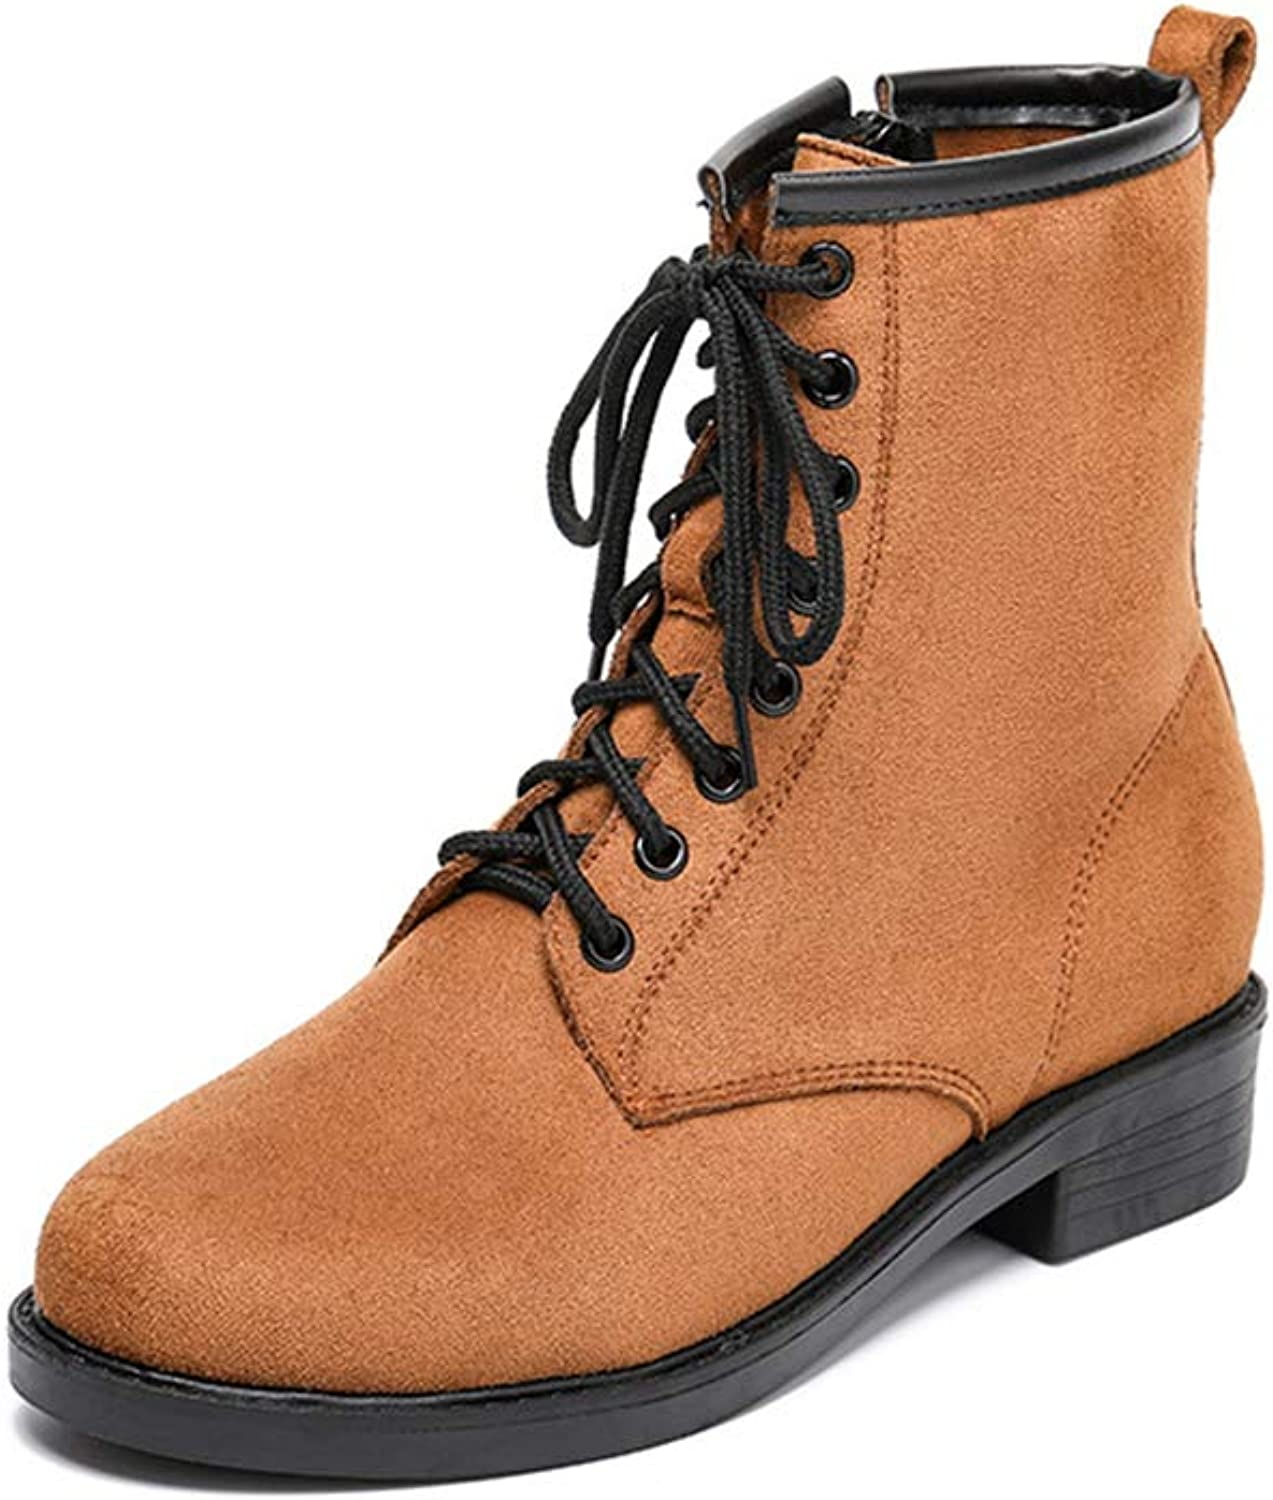 Womens Casual Combat Booties, Motorcycle Ankle Boots Fashion